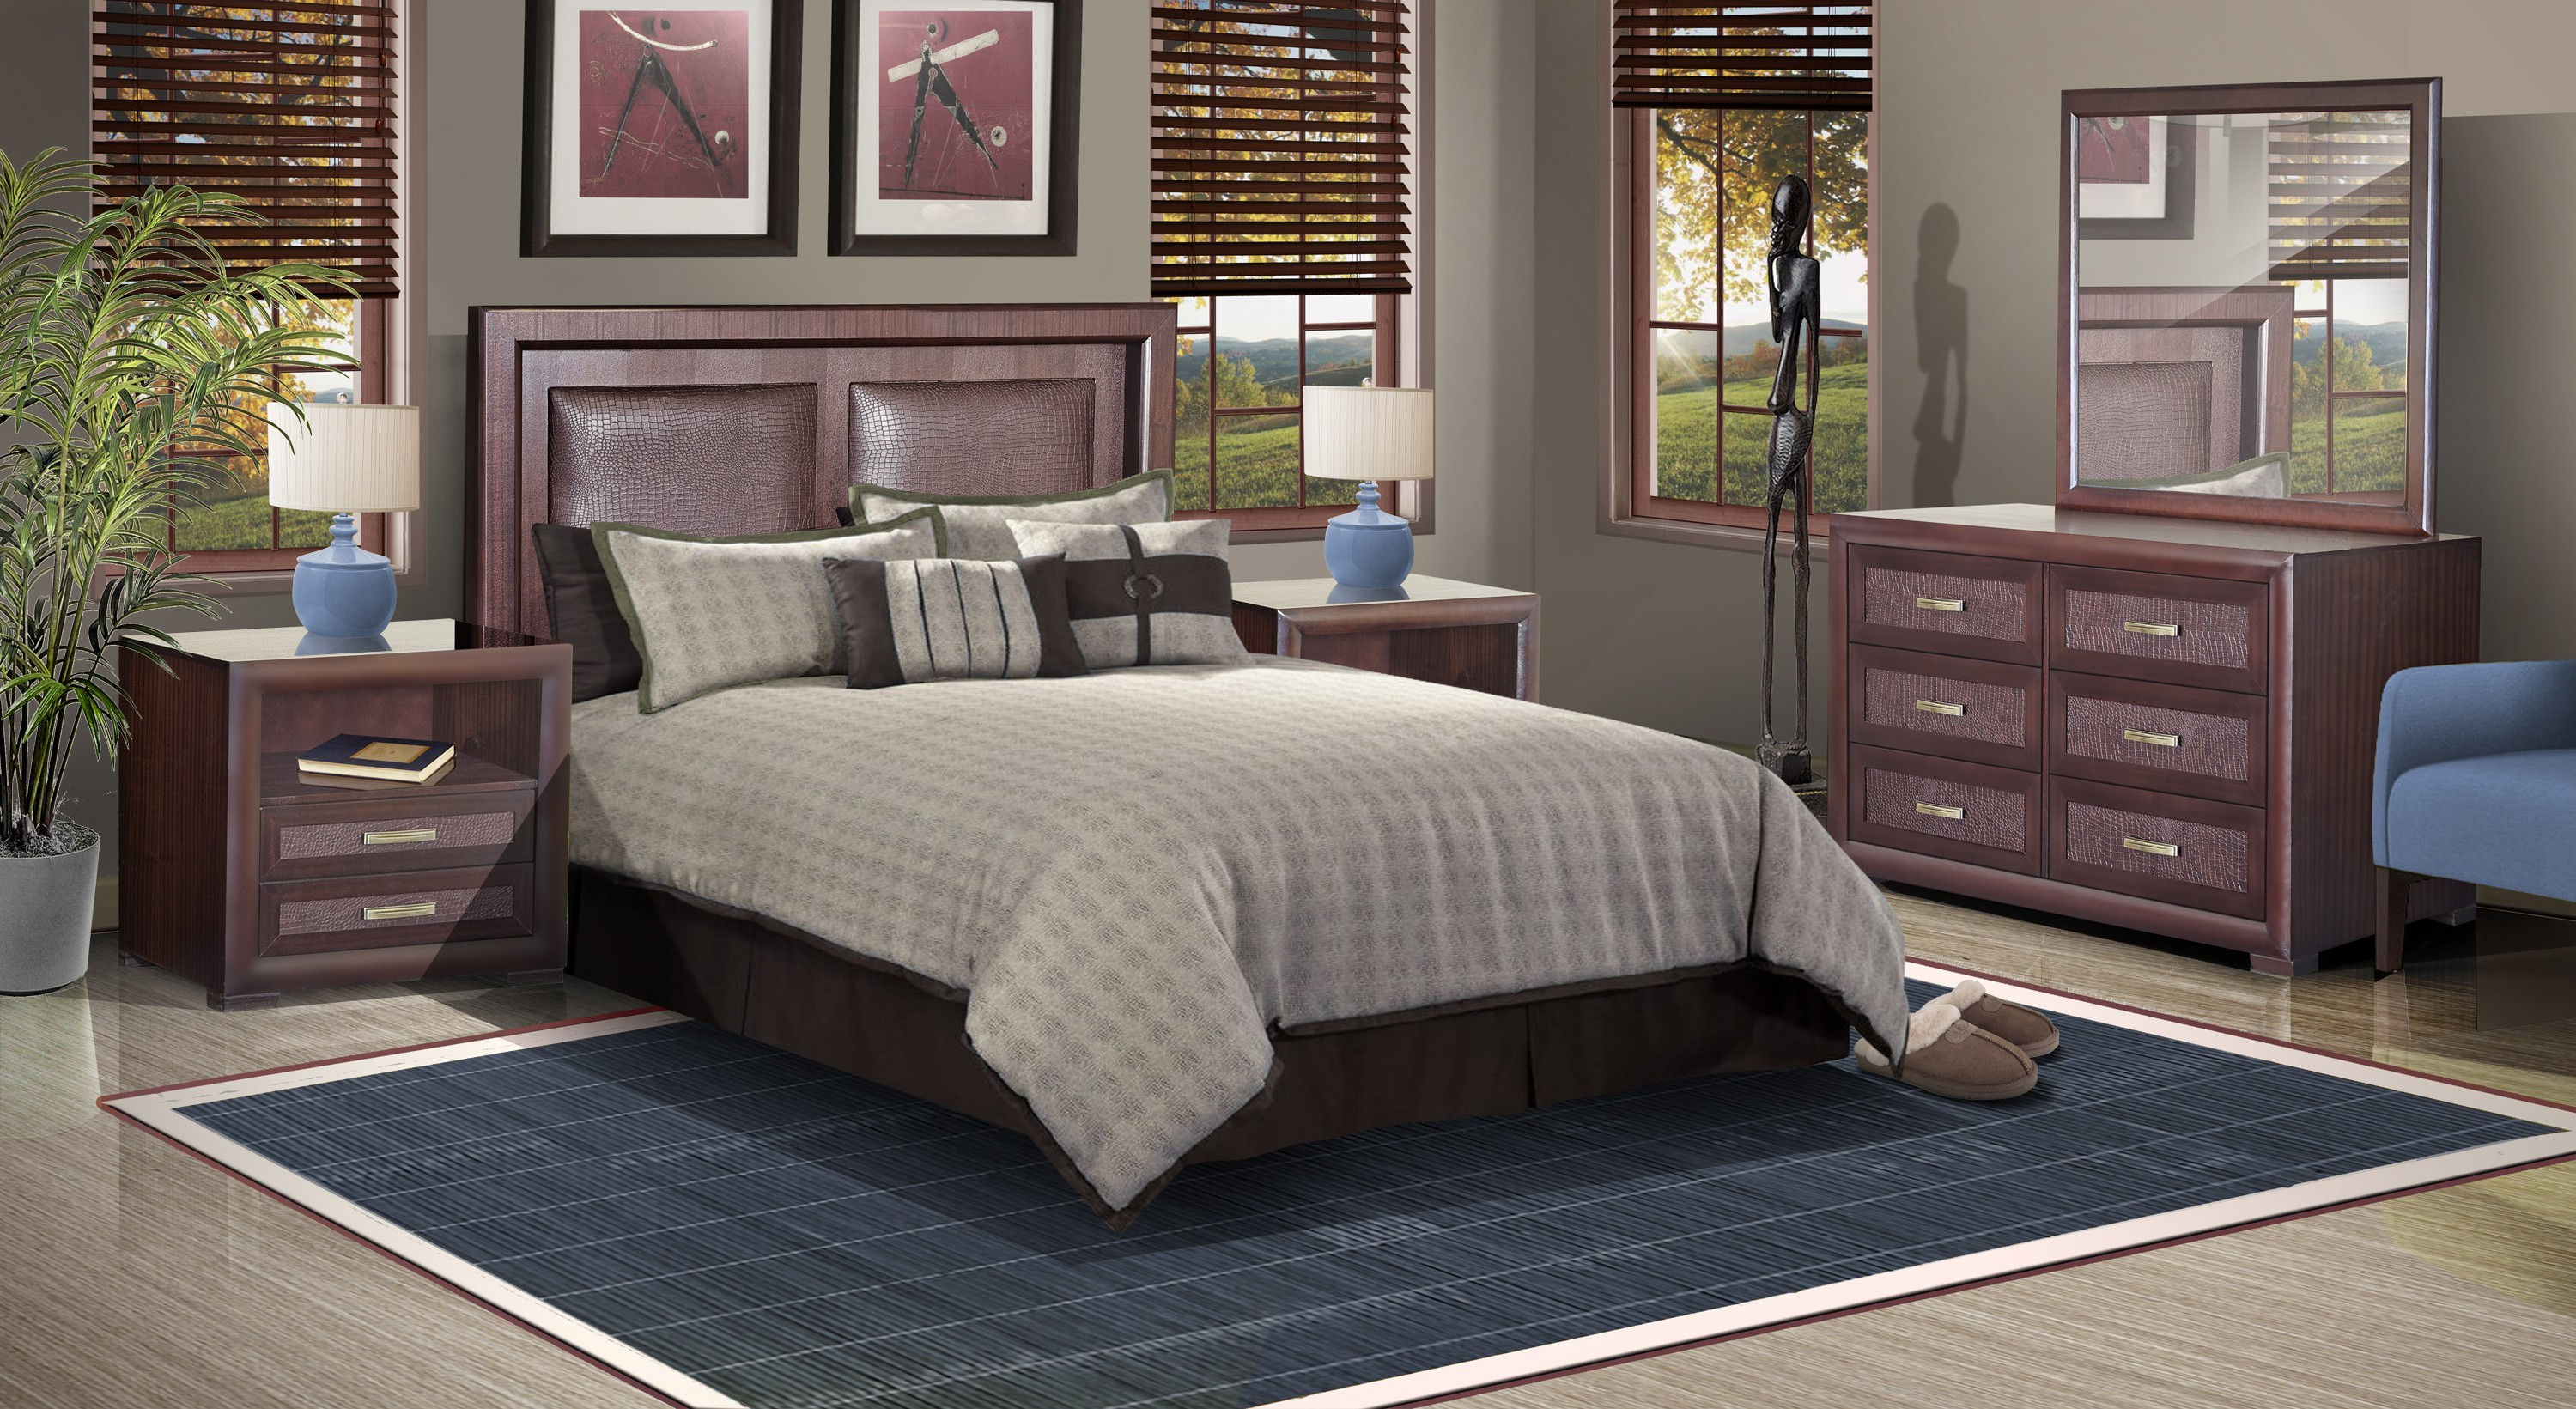 Home Design Ideas Beautiful Bedroom Suit Beating